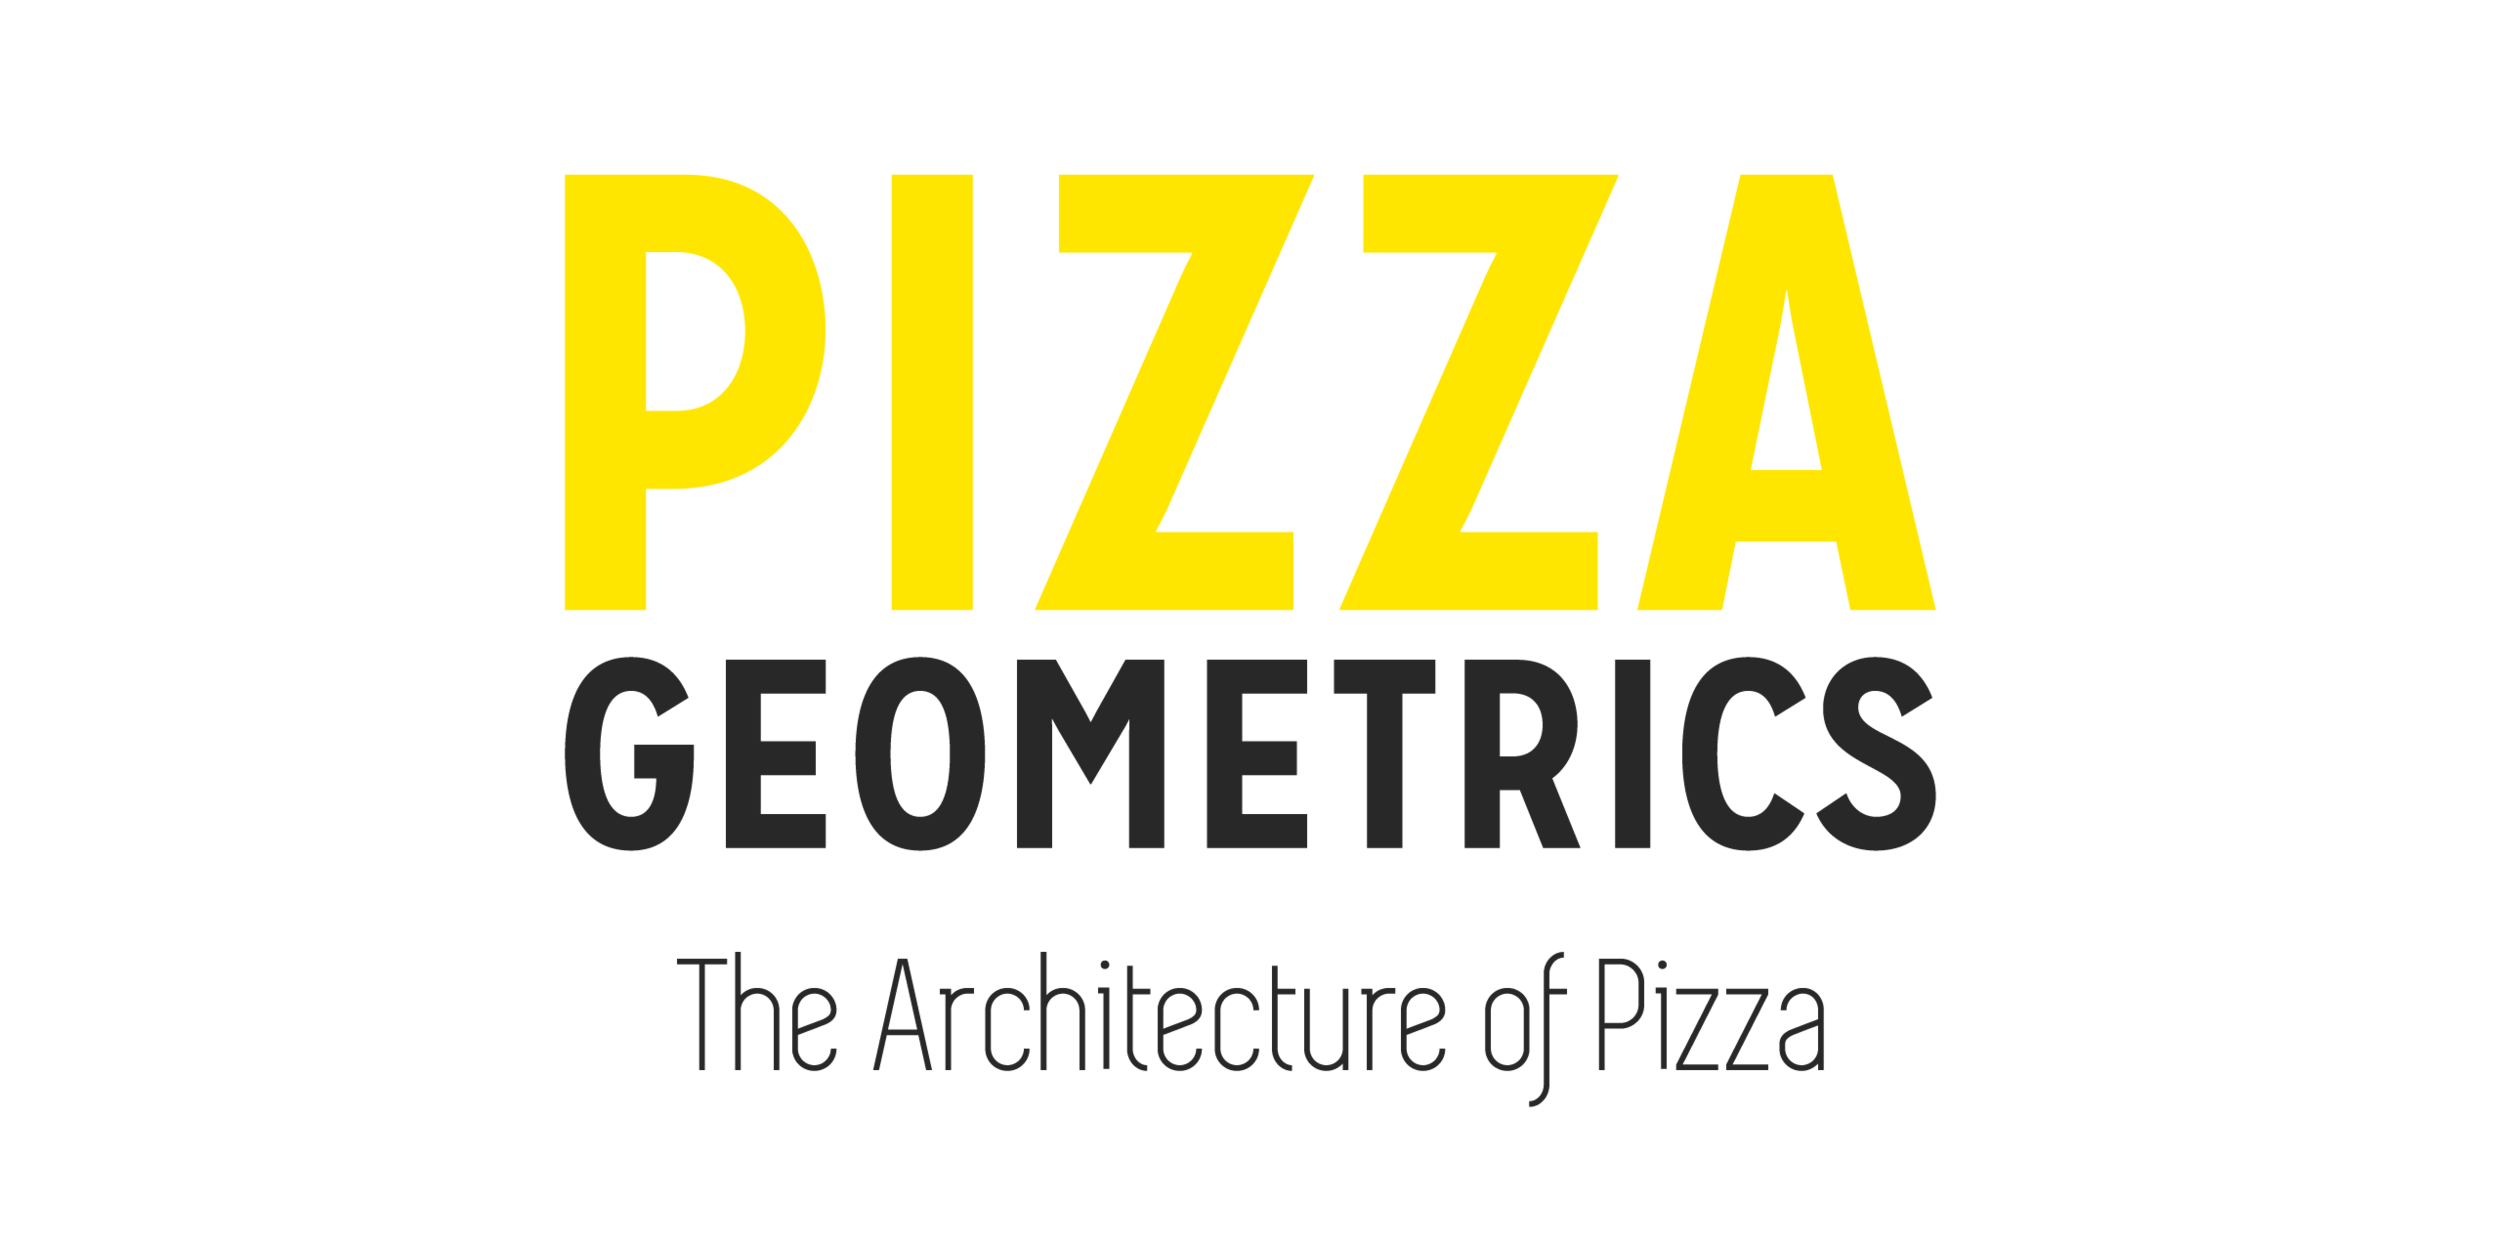 Pizza Geometrics rectangle logo